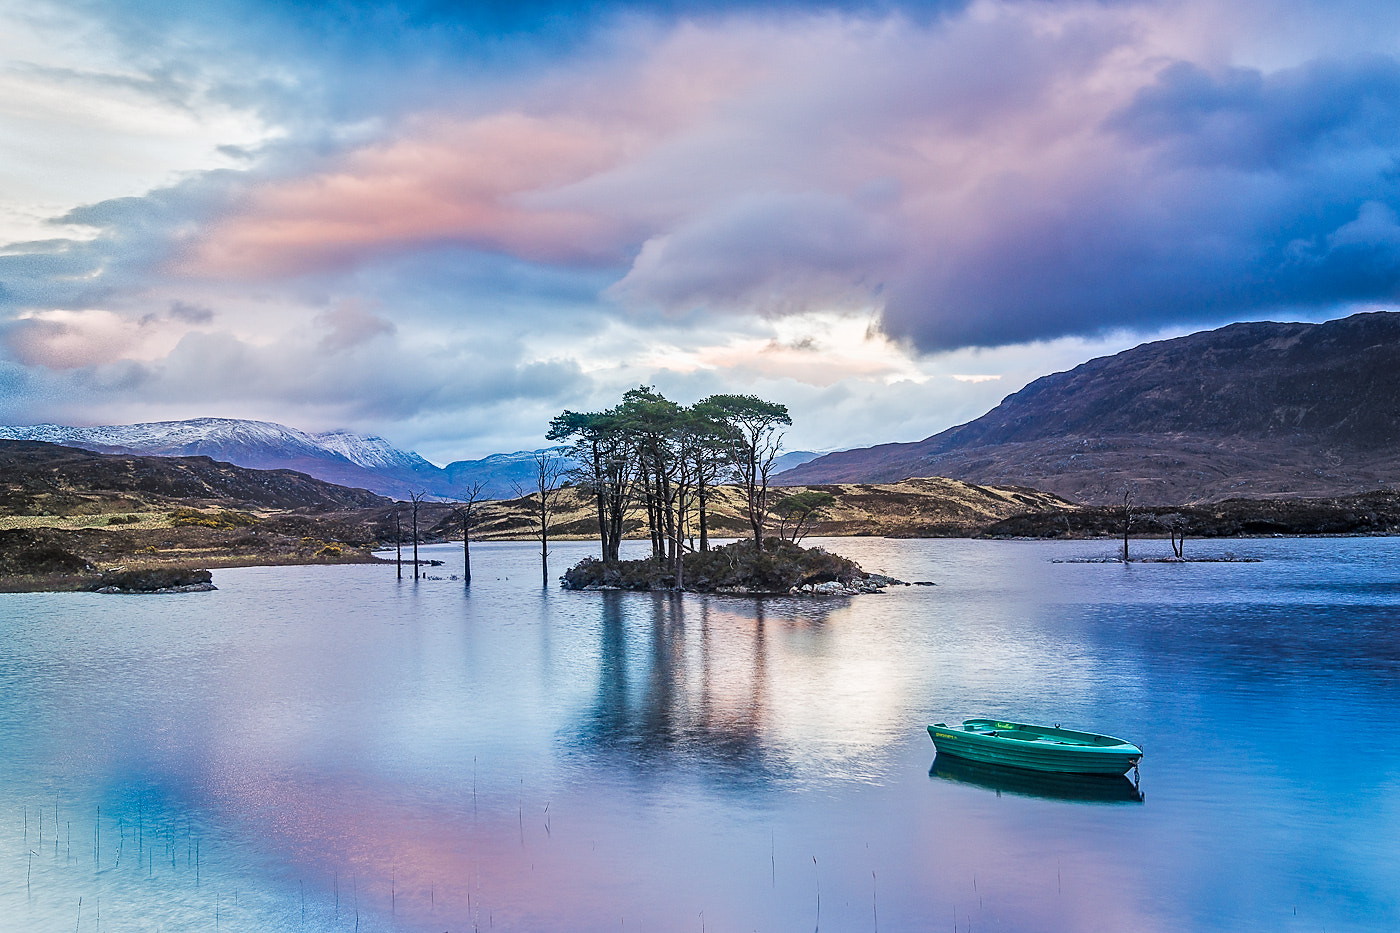 Photograph Loch Assynt Sunset by Maciej Markiewicz on 500px